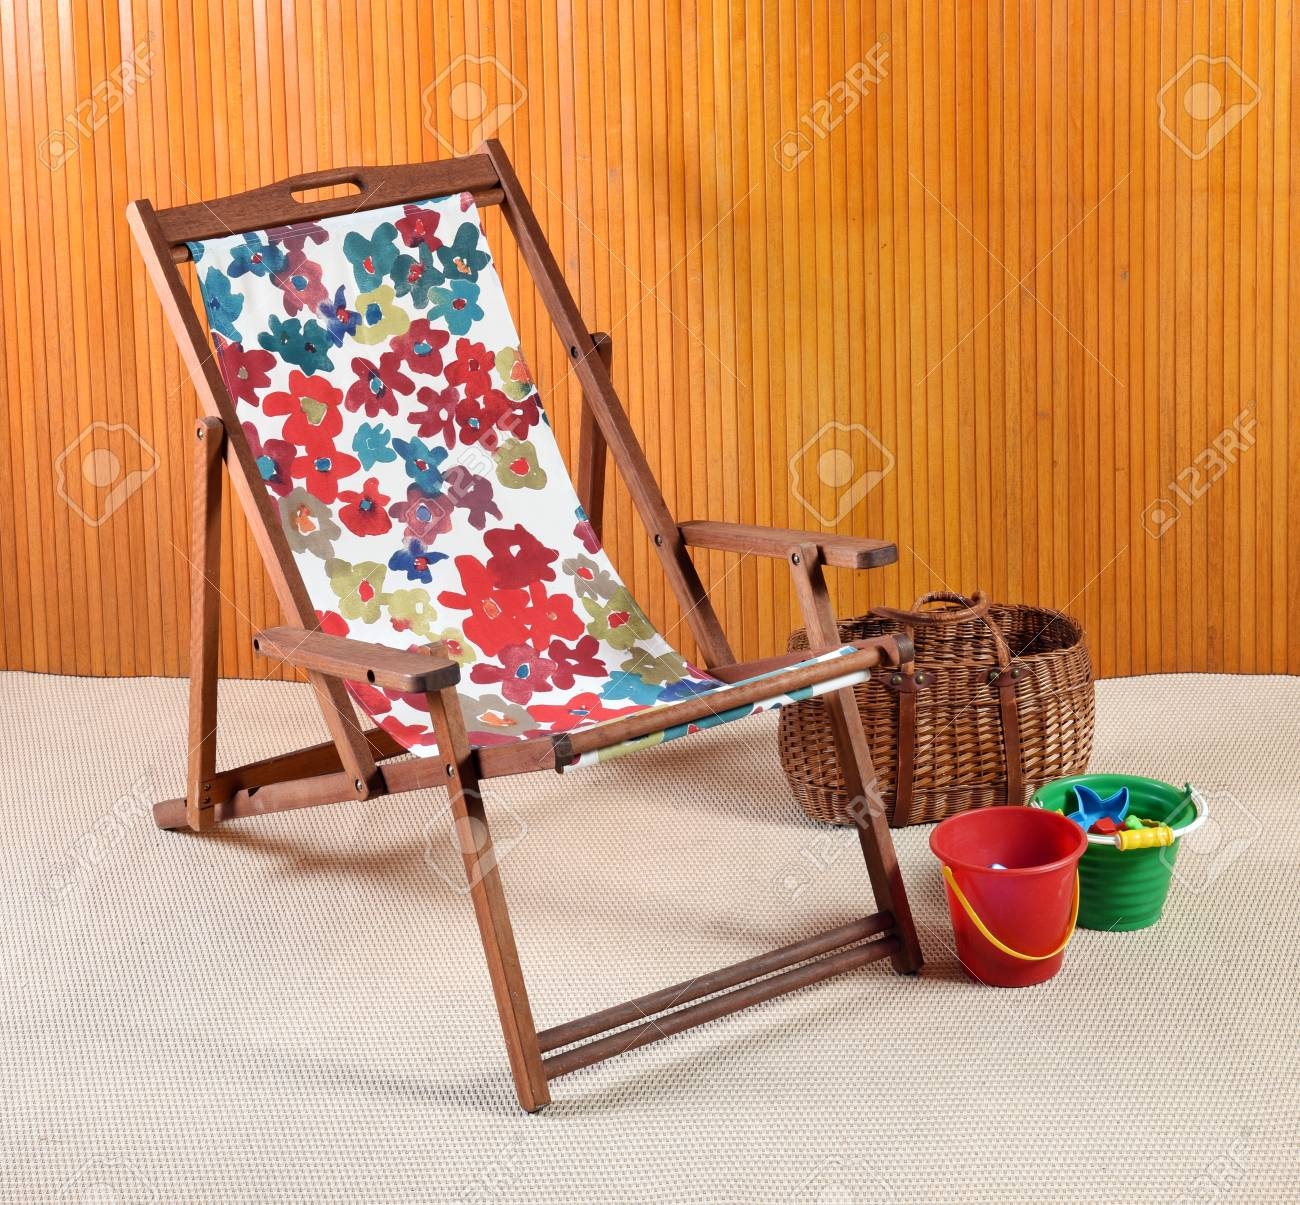 Delicieux Stock Photo   Wooden Canvas Folding Beach Or Deck Chair With Colorful Floral  Print Textile Alongside Plastic Kids Buckets And A Wicker Basket